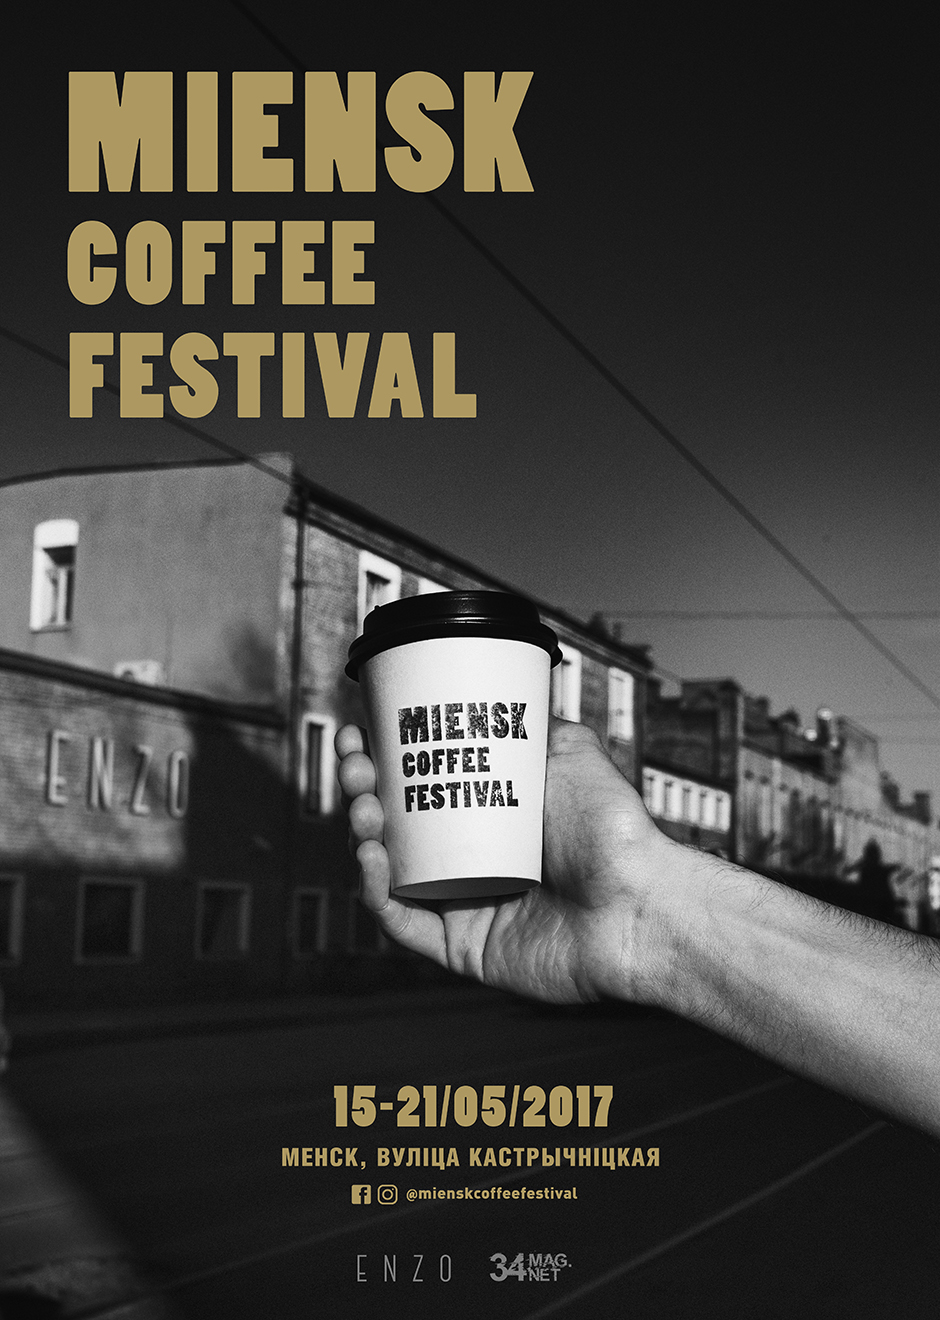 Miensk Coffee Festival 2017